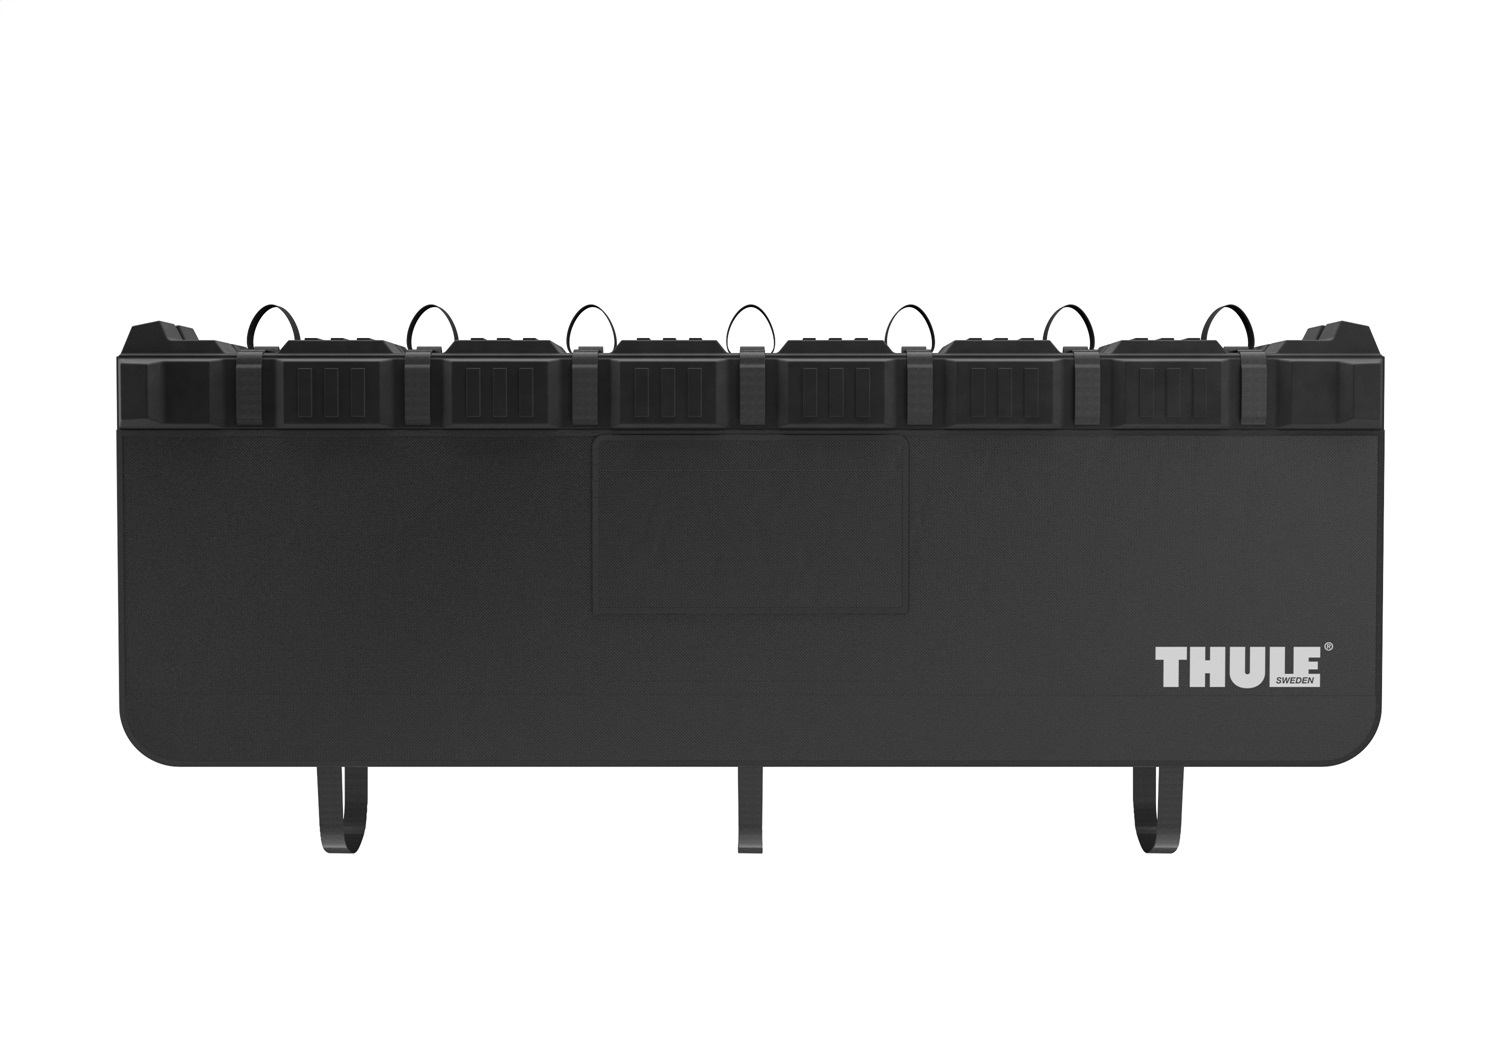 Thule Bicycle Rack